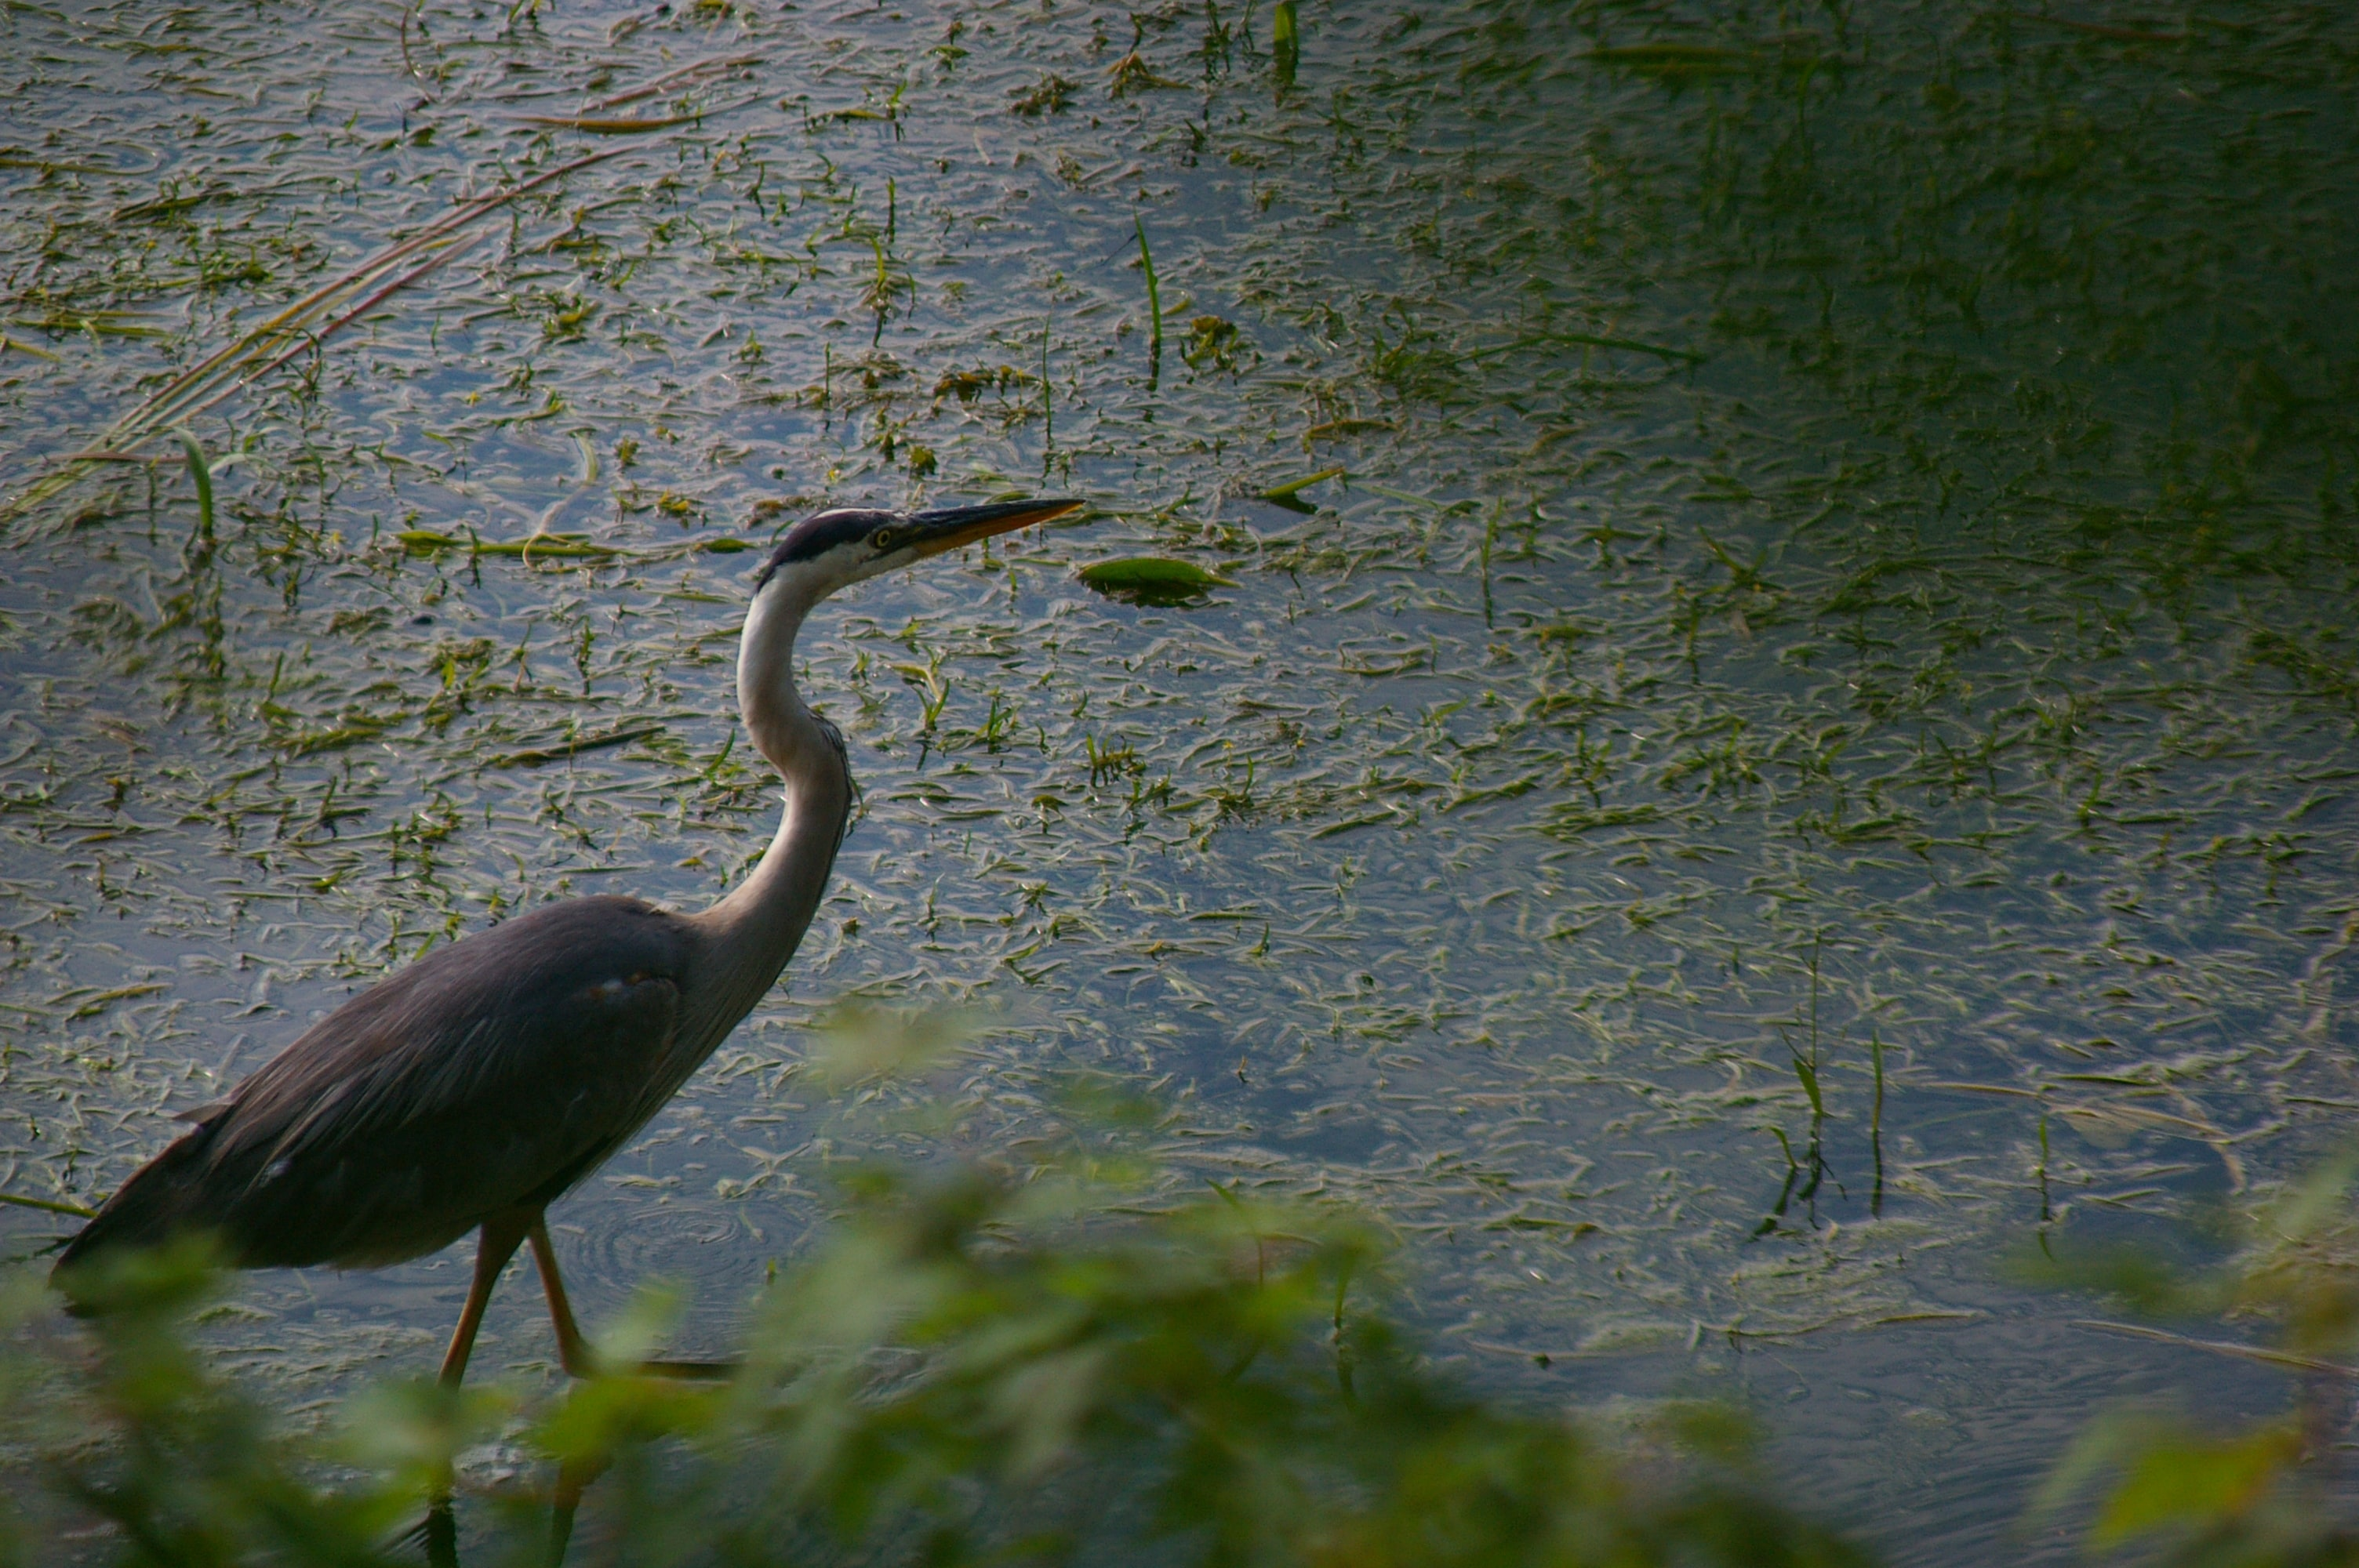 Majestic heron bird wades in murky blue pond water